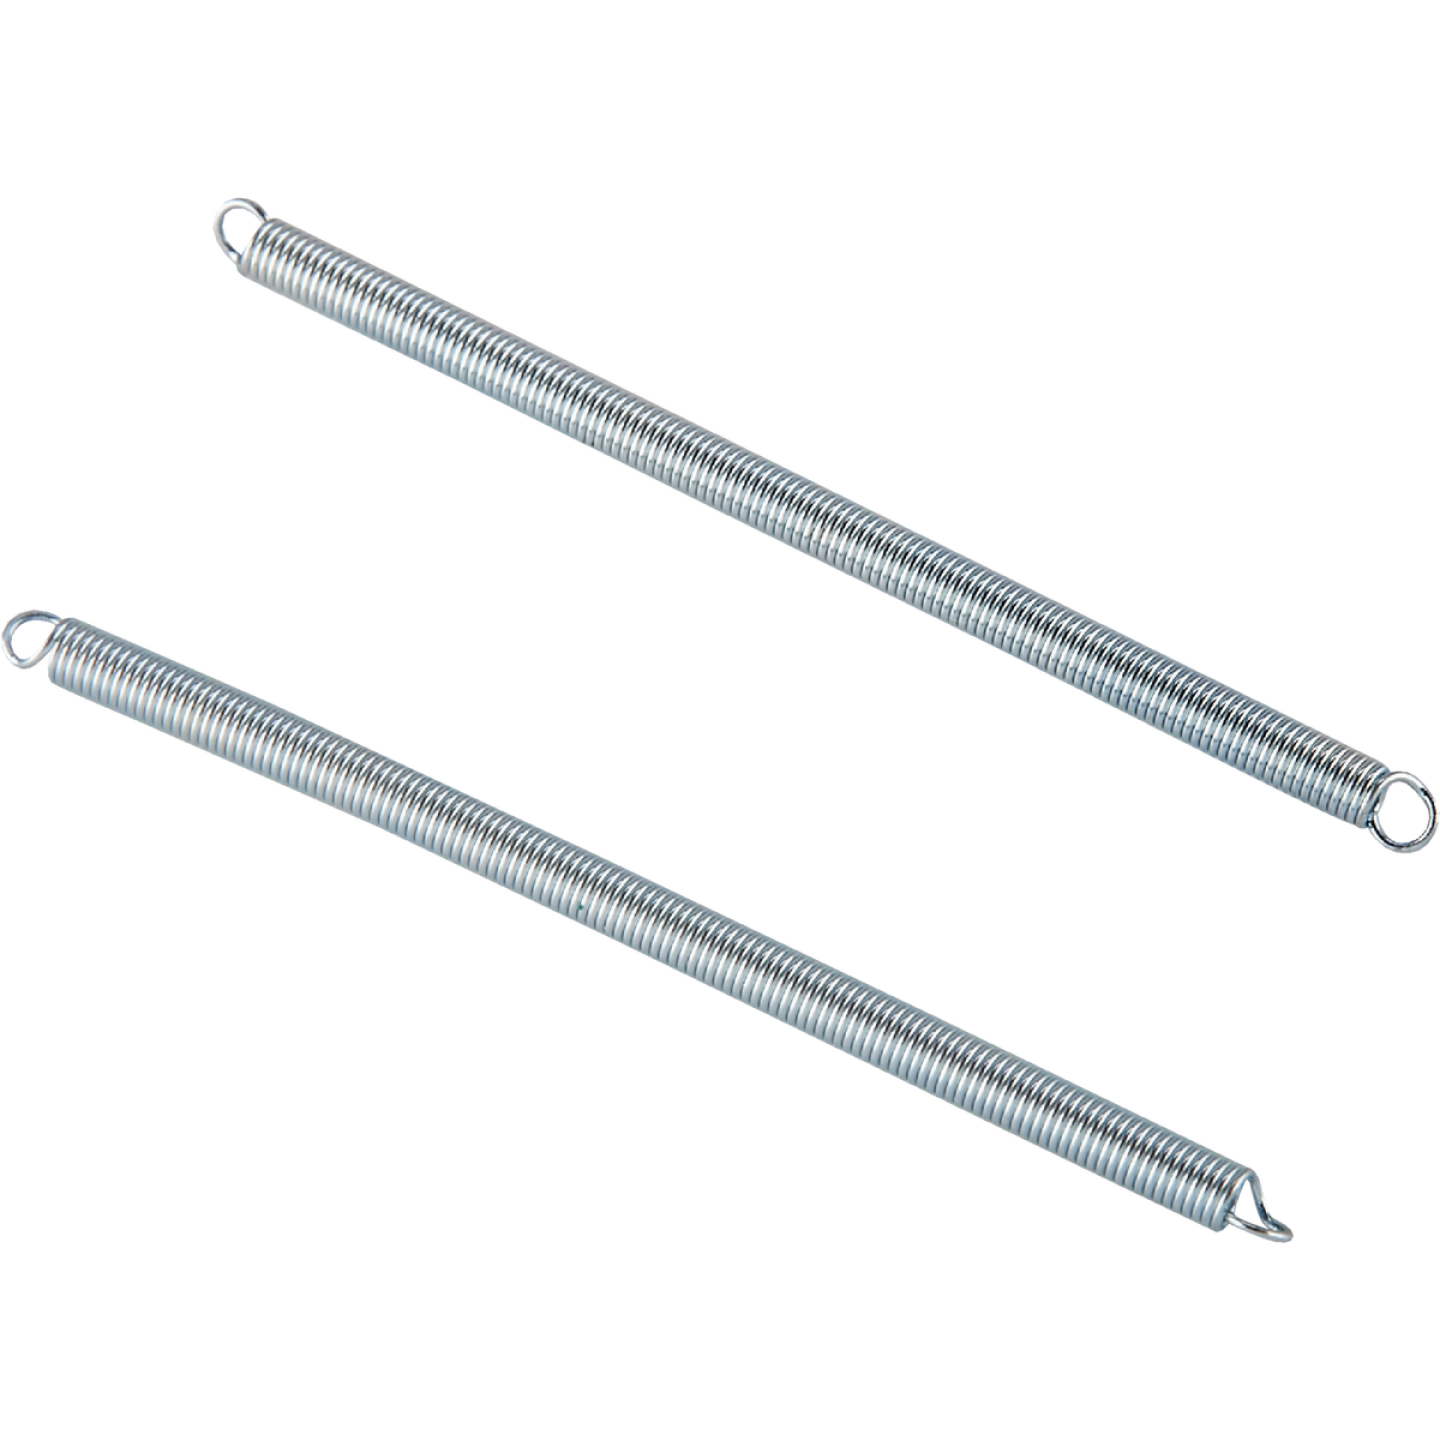 Century Spring 16 In. x 1-1/8 In. Extension Spring (1 Count) Image 1